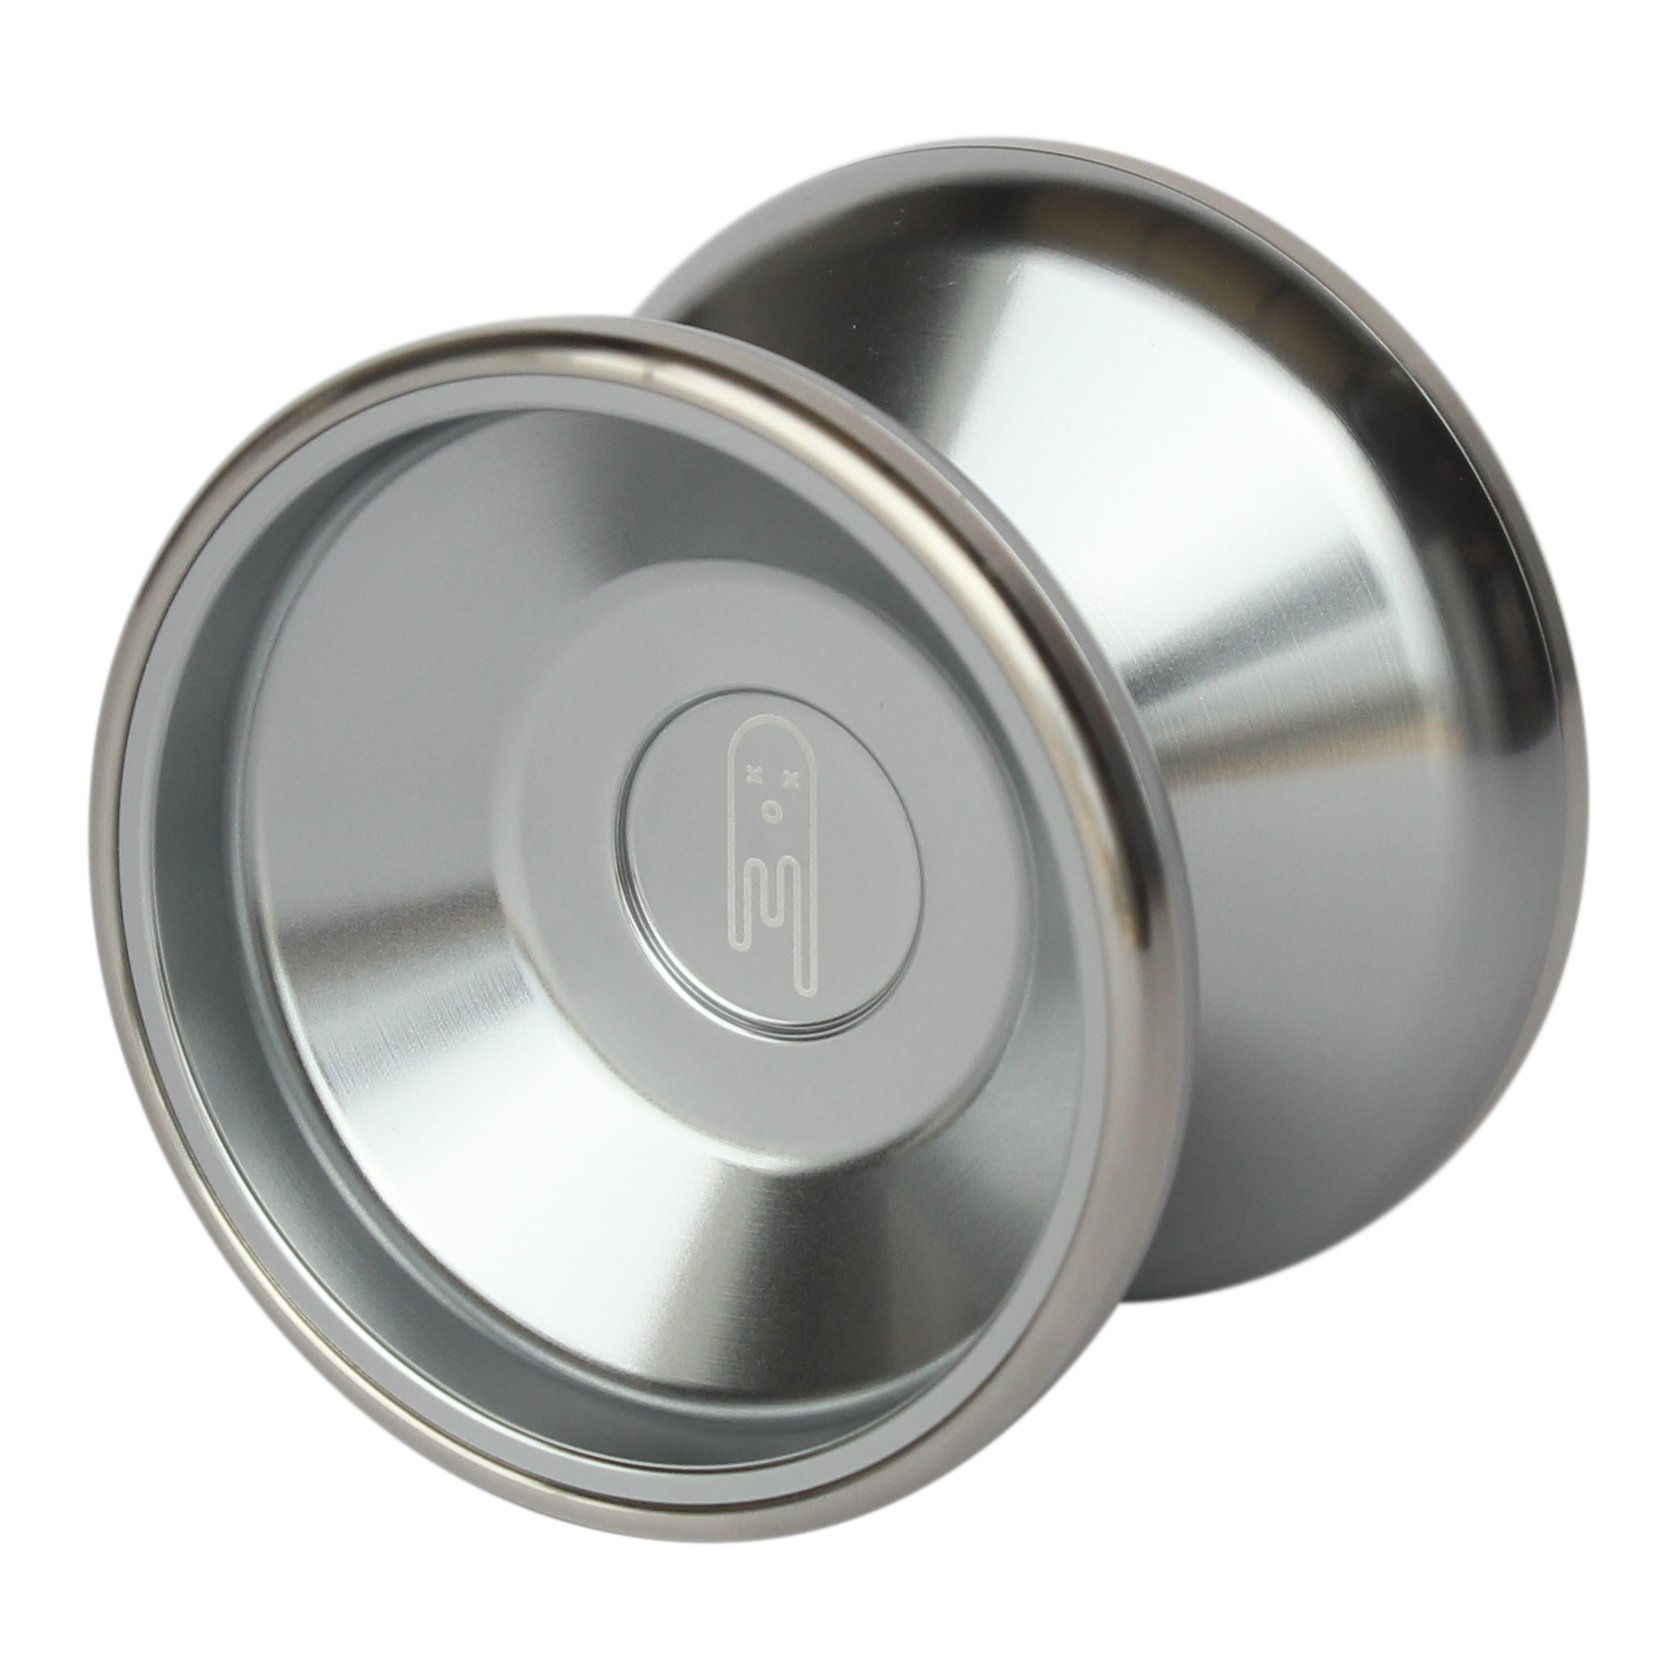 Yoyo King Ghost Bimetal Aluminum and Steel Professional Yoyo with Ball Bearing Axle and Extra String